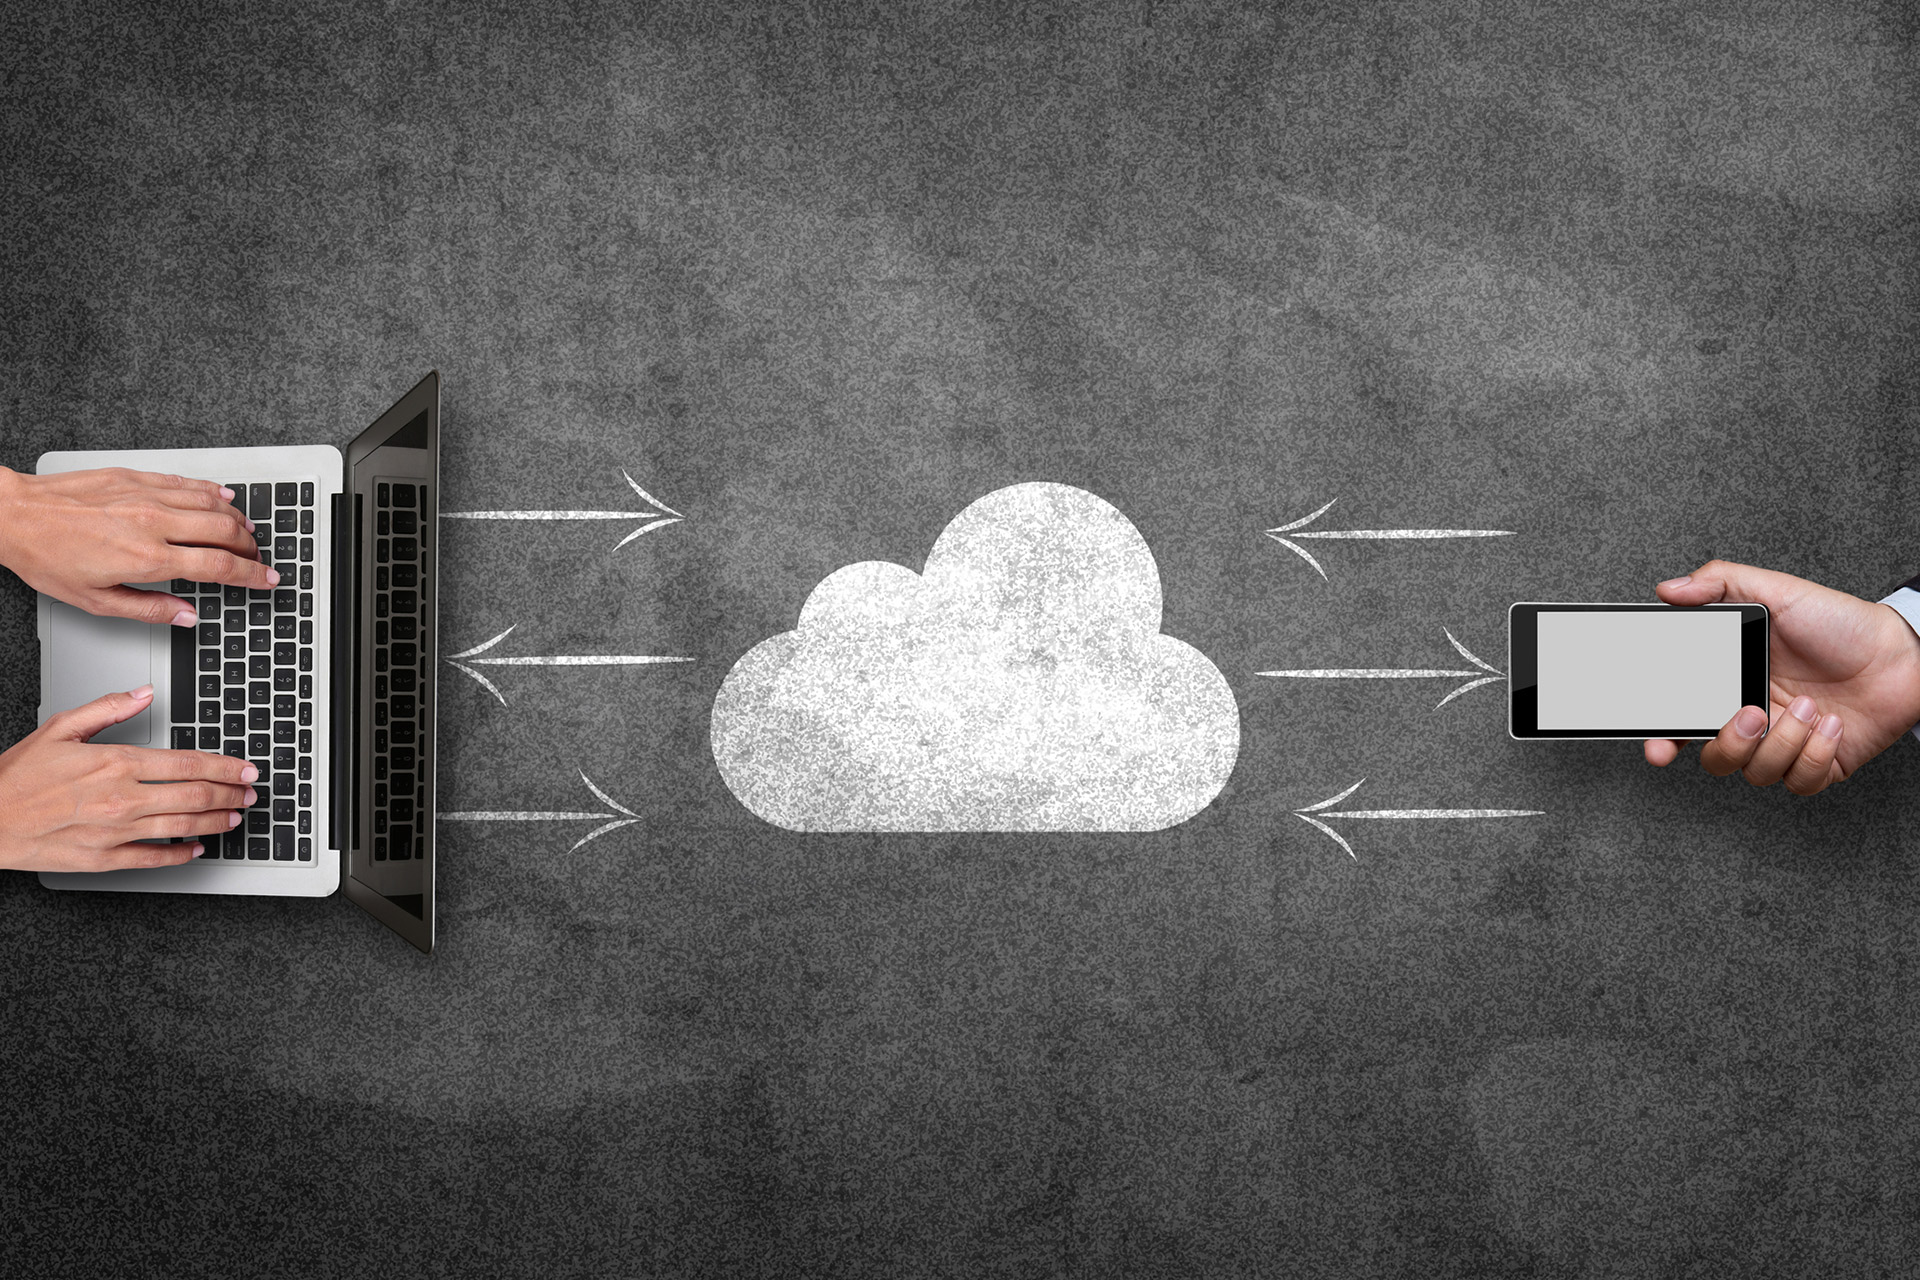 9 Overlooked Reasons Why Cloud Computing Plays Well With Enterprise Mobility